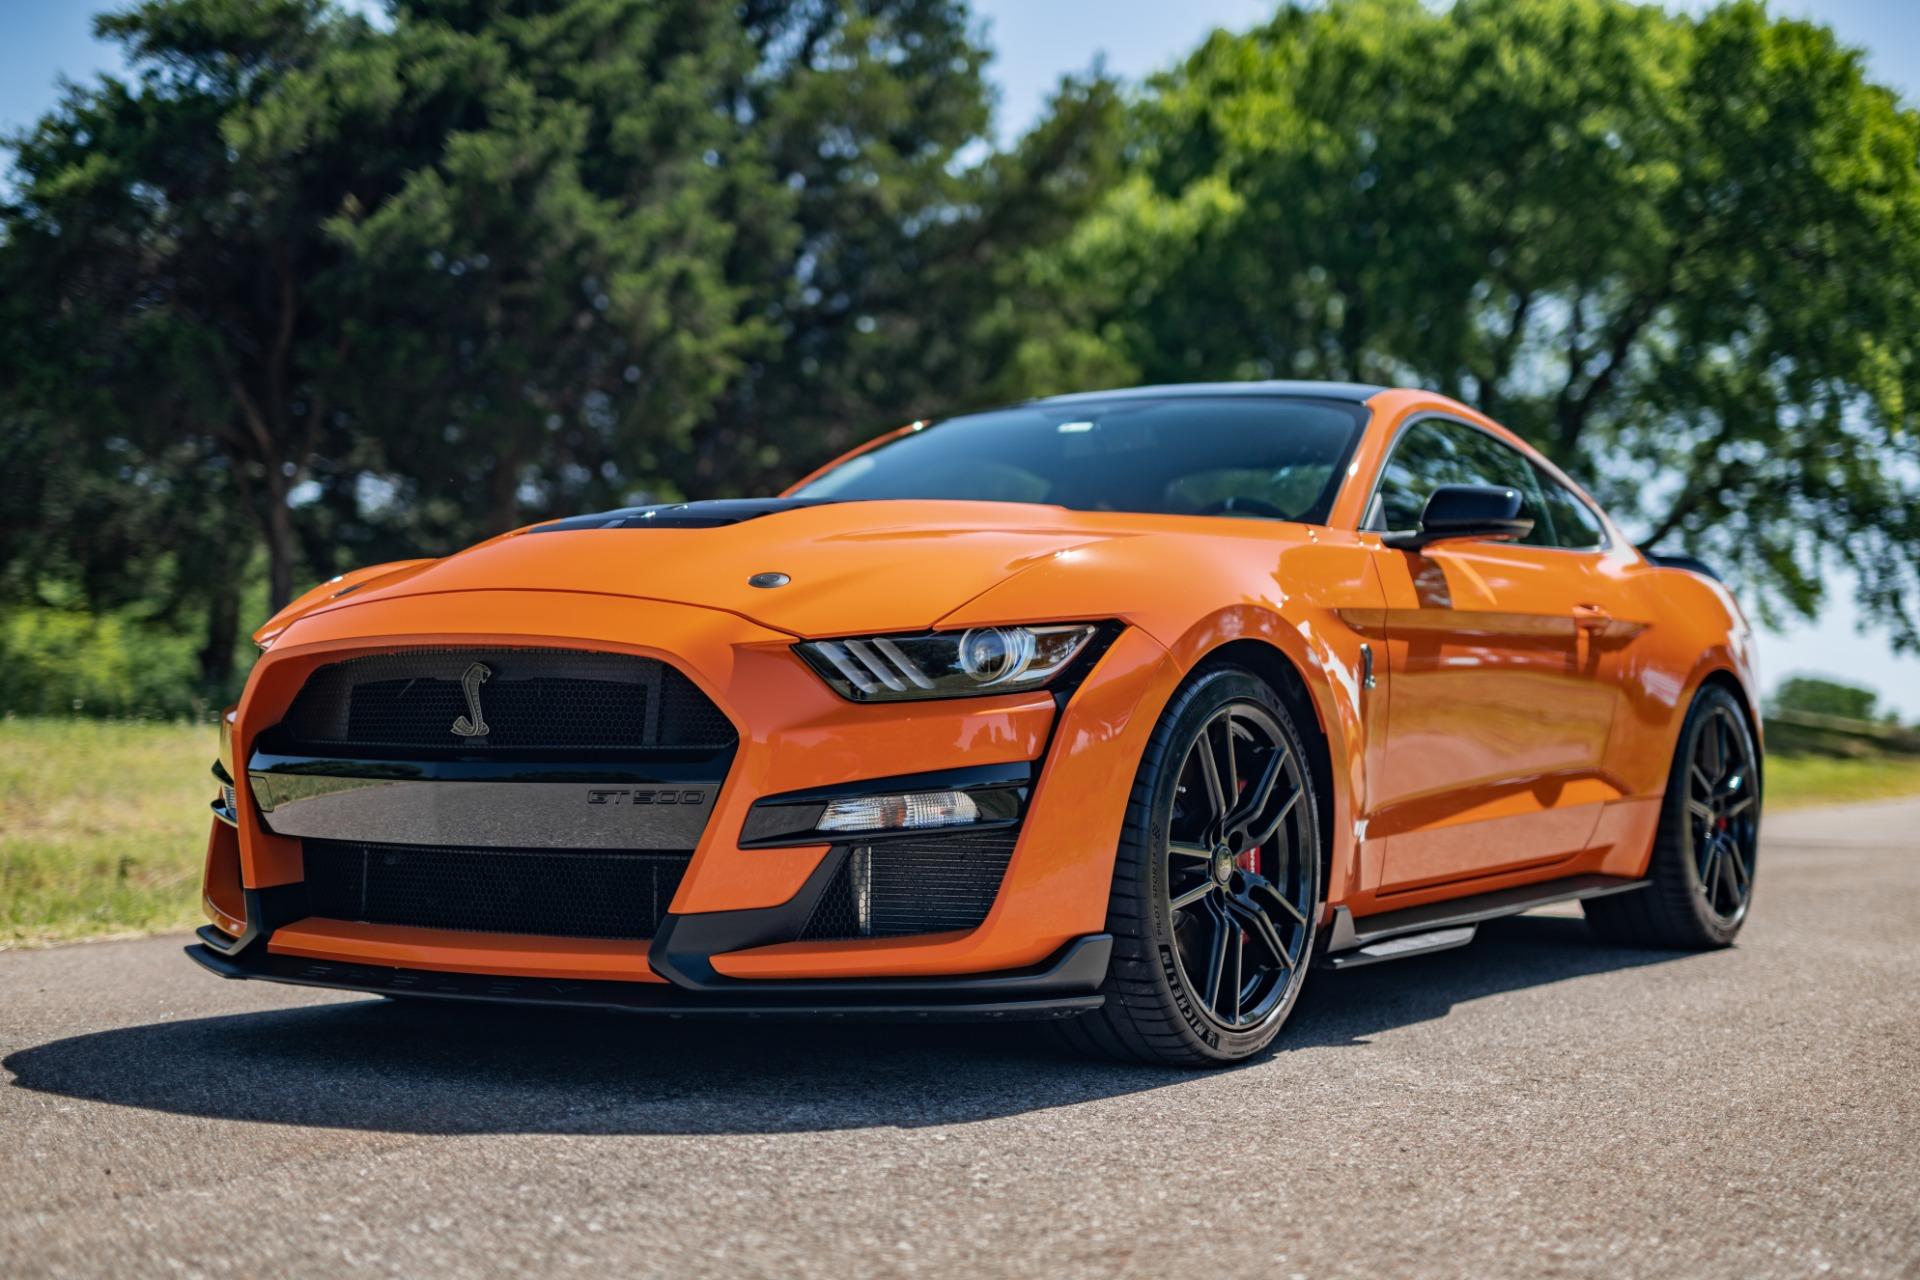 Used 2020 Ford Mustang Shelby GT500 For Sale ($92,495) | Exotic Motorsports of Oklahoma Stock #C324